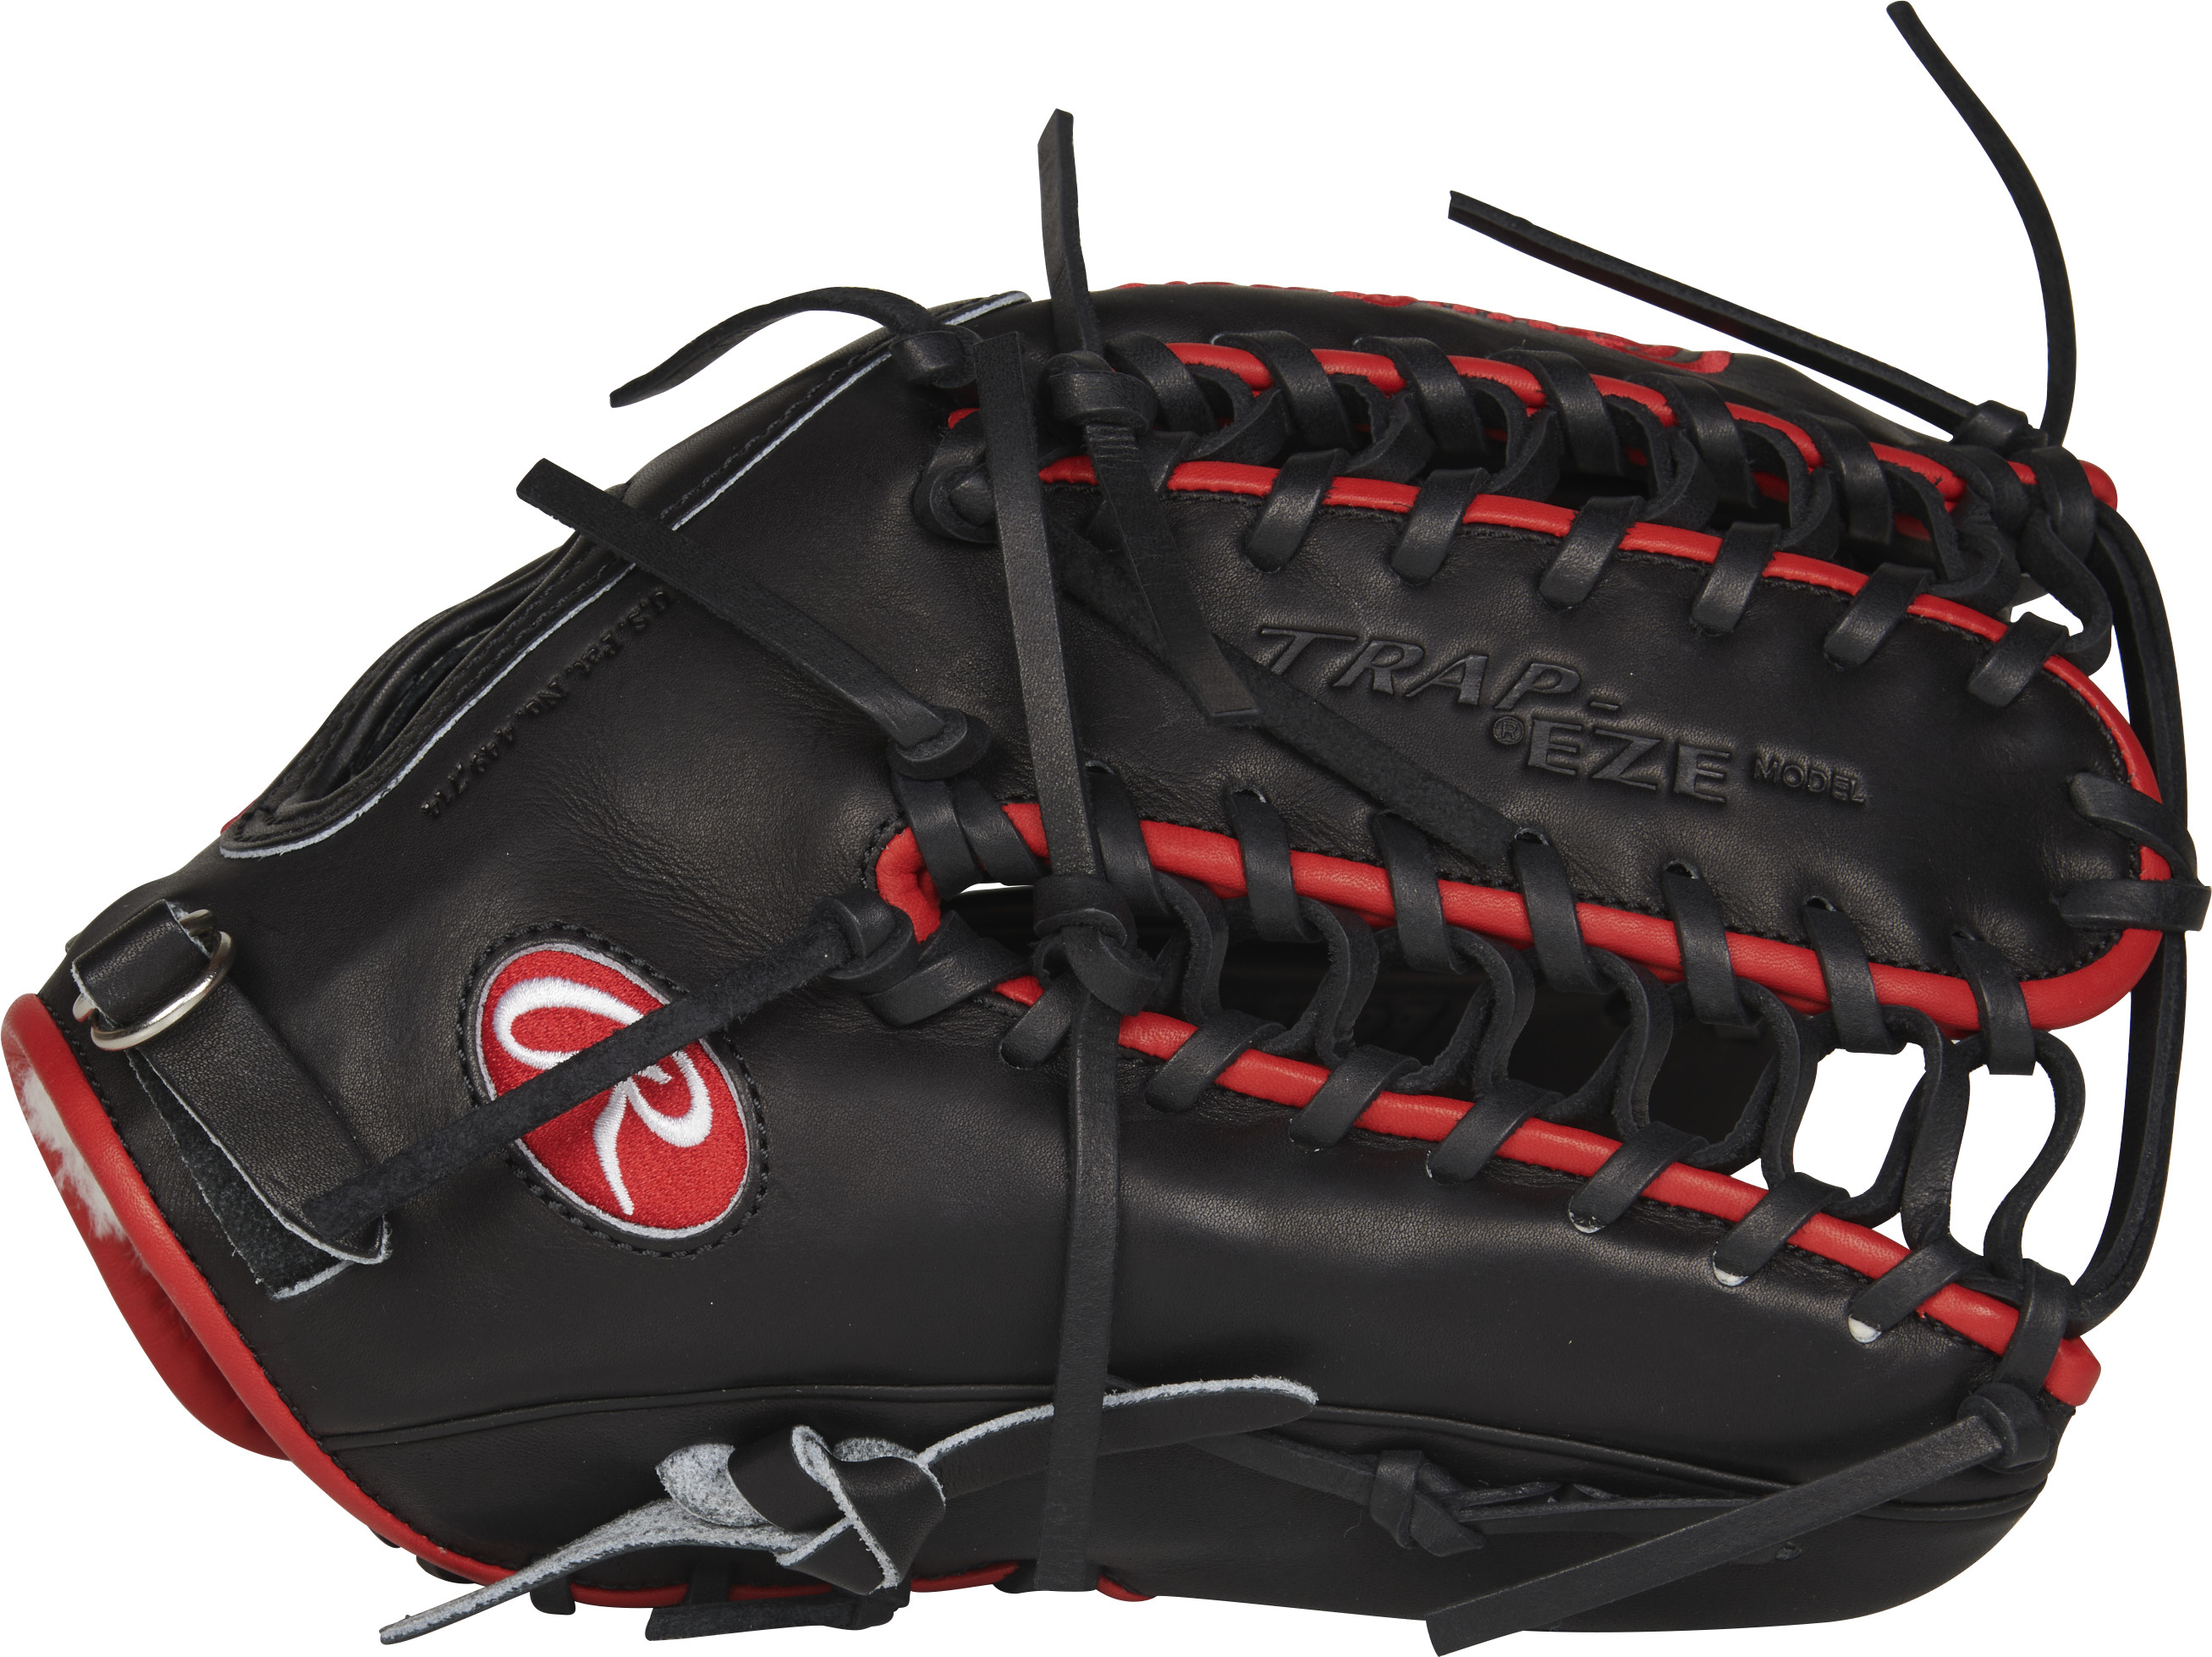 http://www.bestbatdeals.com/images/gloves/rawlings/PROSMT27-3.jpg